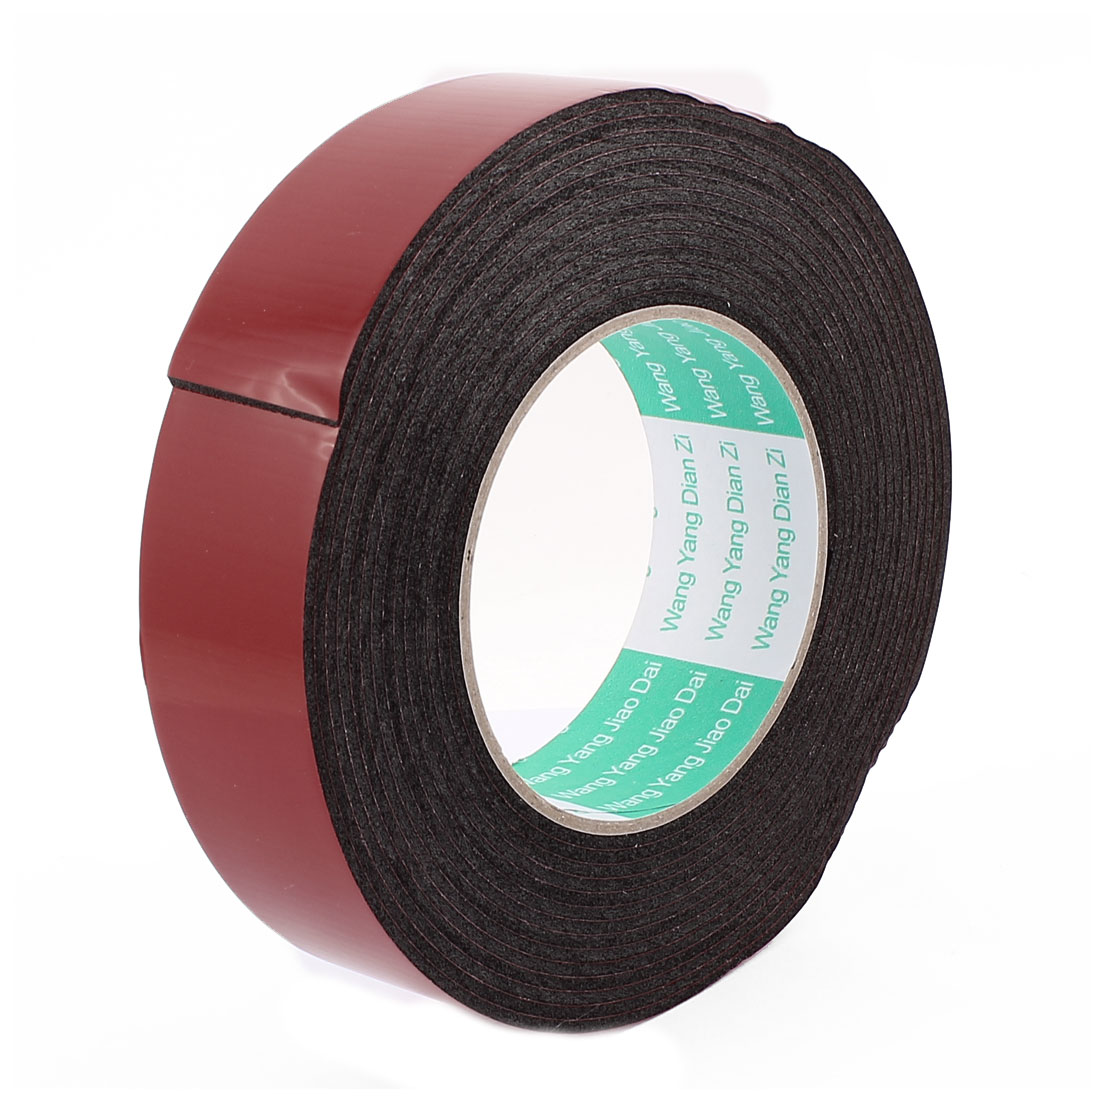 Black Strong Double Sided Adhesive Tape Sponge Tape 35MM Width 5M Length